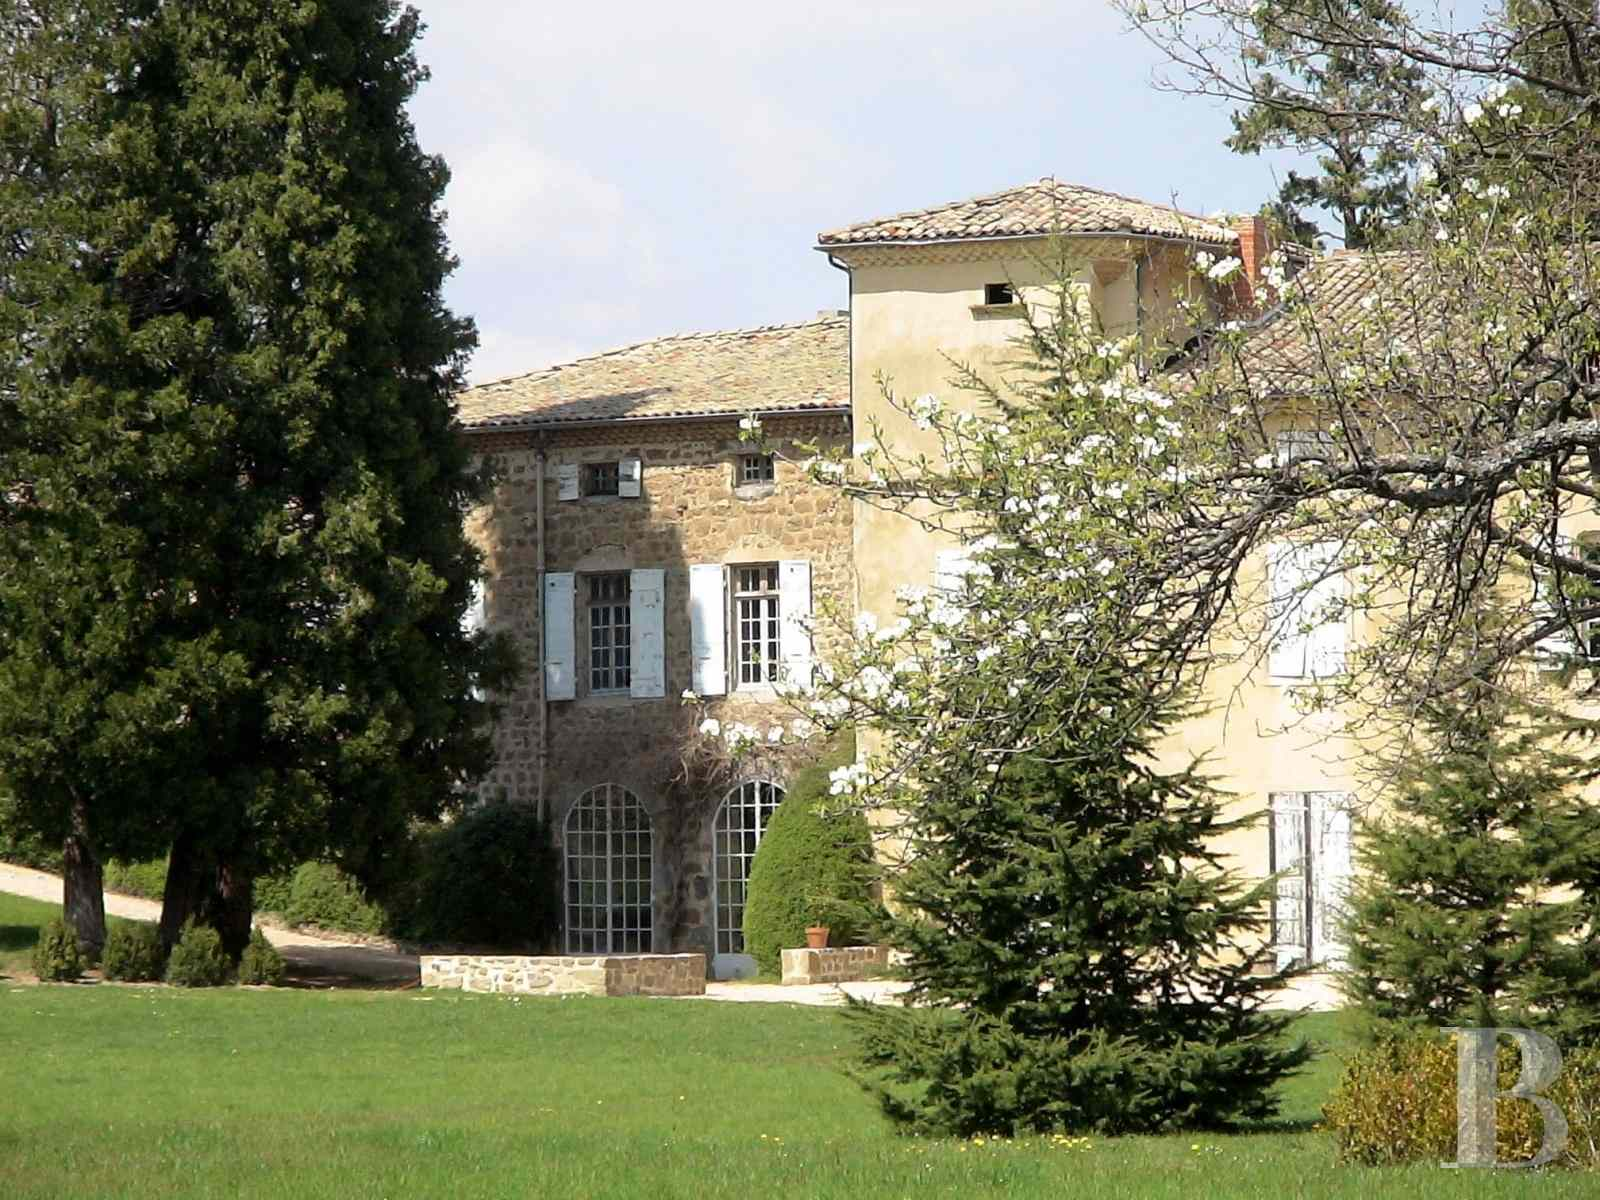 property for sale France rhones alps ardeche 18th - 1 zoom